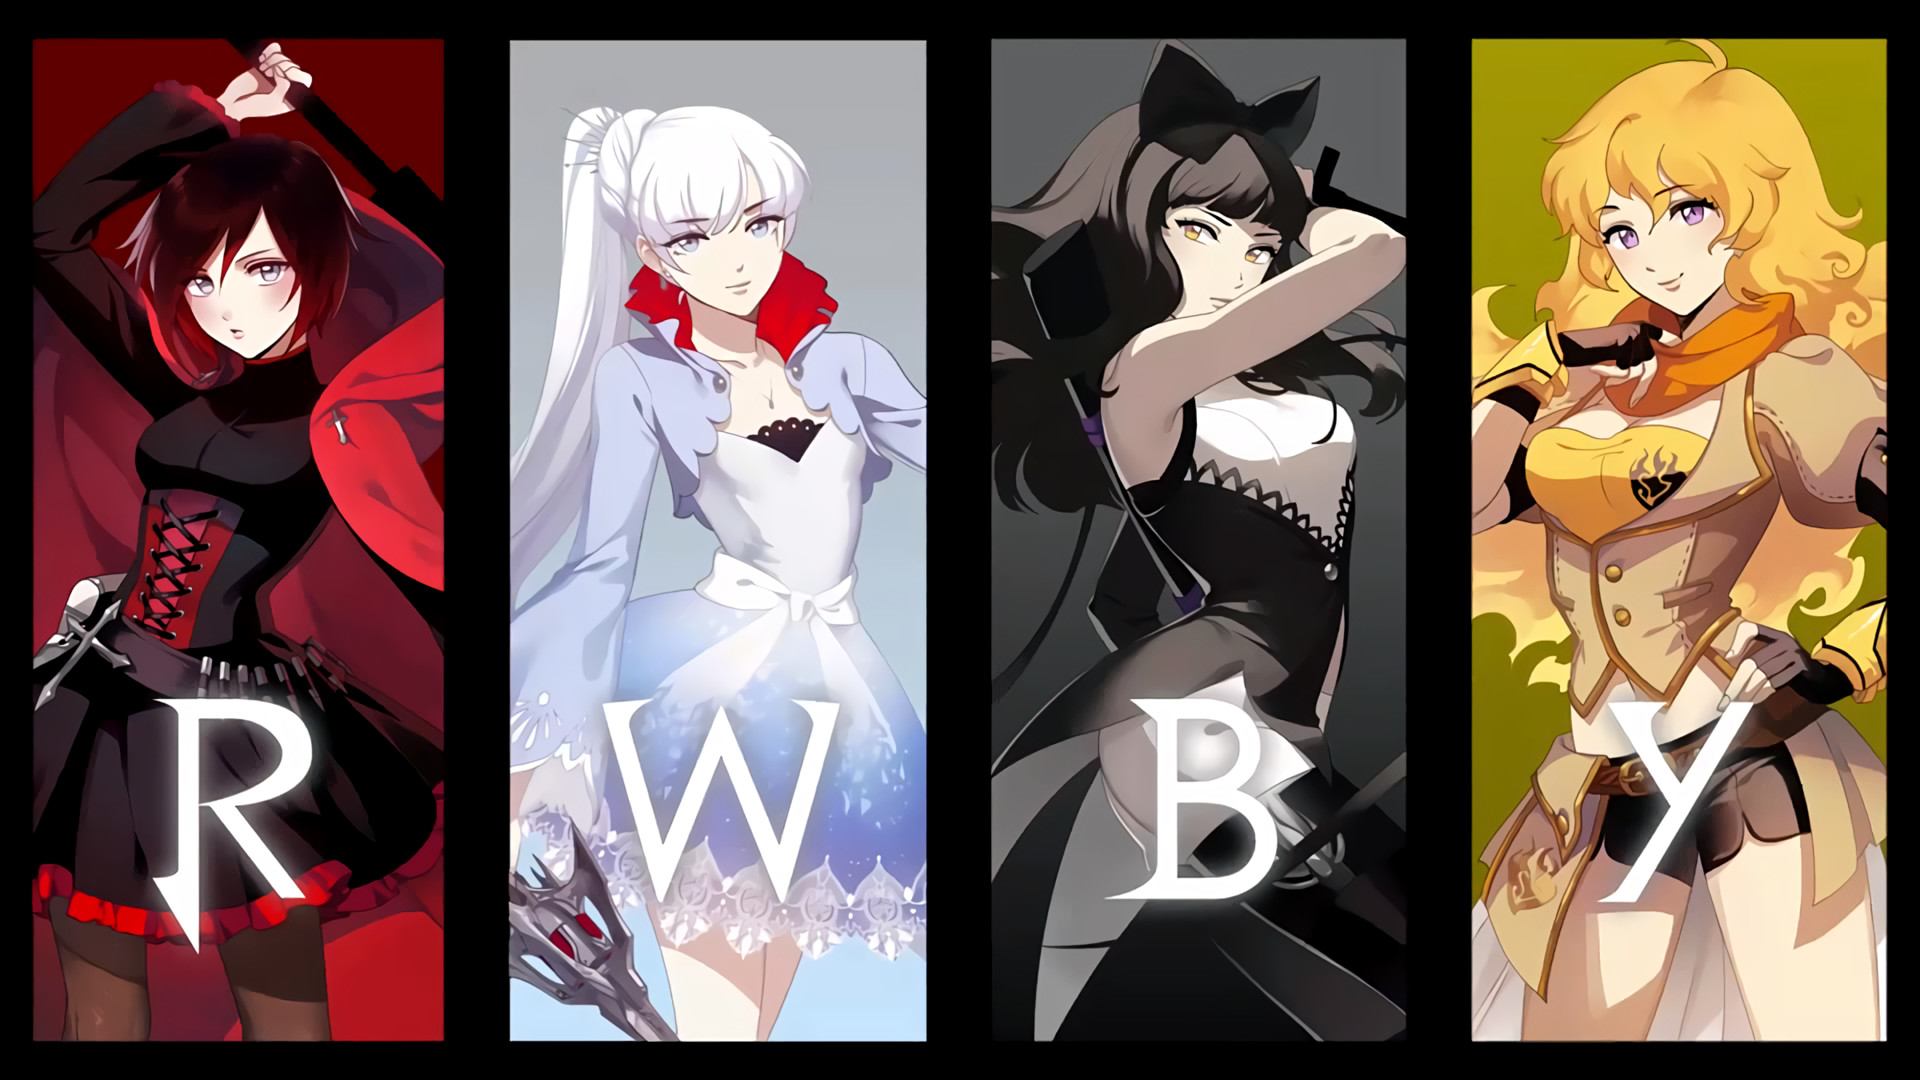 Res: 1920x1080, HD Wallpaper | Background Image ID:420742.  Anime RWBY